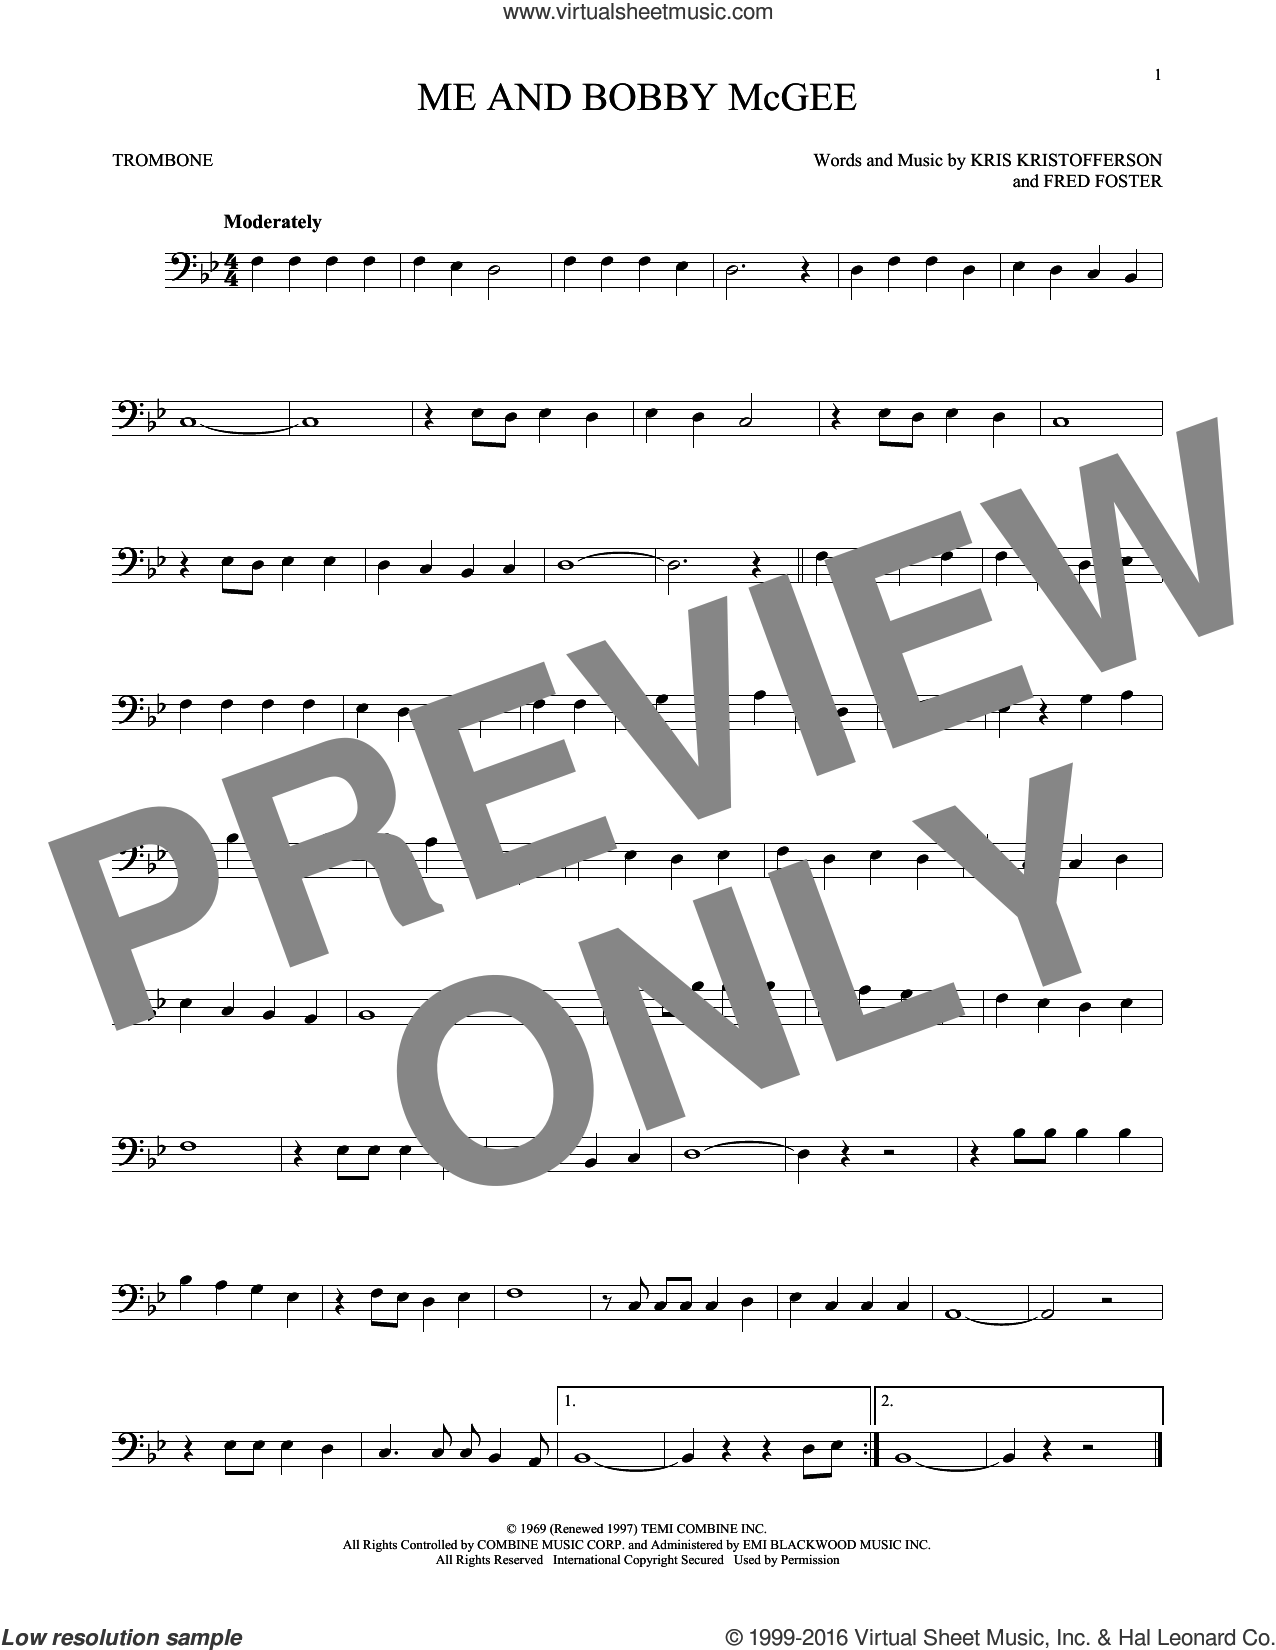 Me And Bobby McGee sheet music for trombone solo by Kris Kristofferson, Janis Joplin, Roger Miller and Fred Foster, intermediate skill level